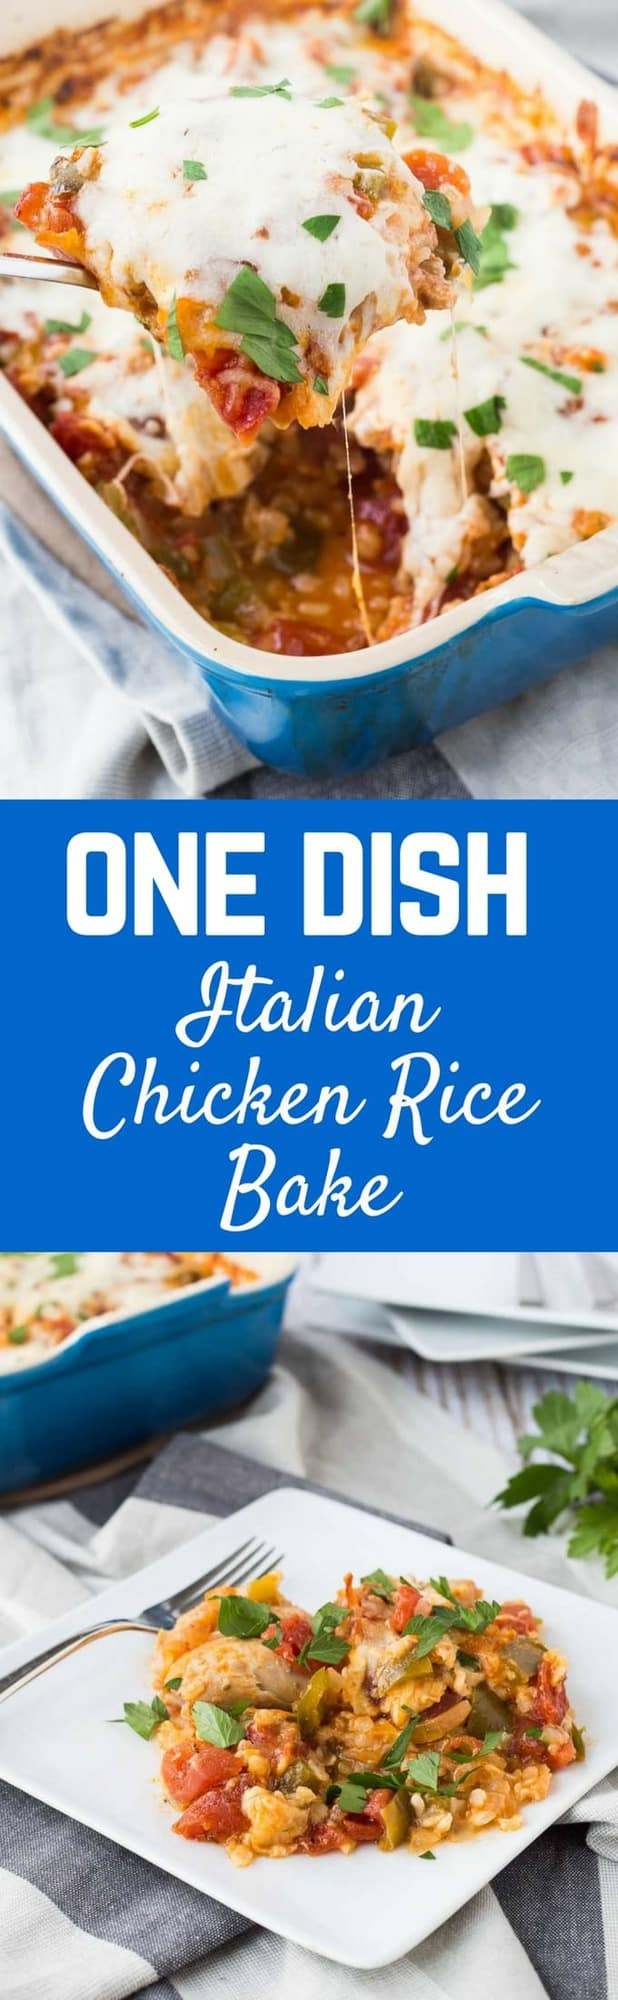 Do you think a DELICIOUS, quick, budget-friendly meal is impossible? Well, it's not! This one dish Italian chicken and rice bake is here to save the day.